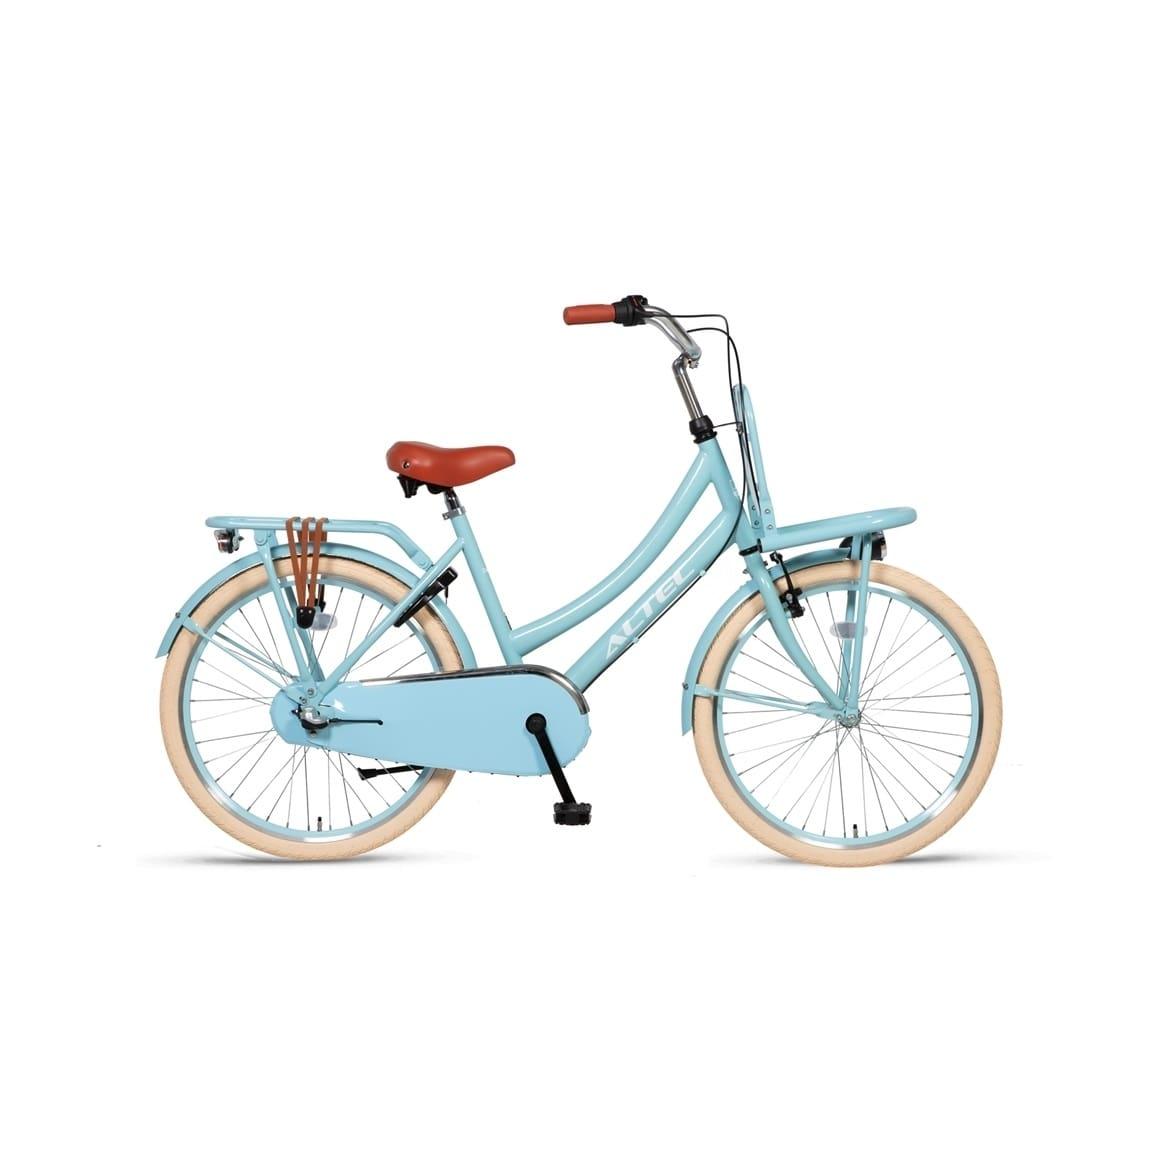 Altec-Dutch-24inch-Transportfiets-N3-Sky-Blue-Nieuw-2019-min